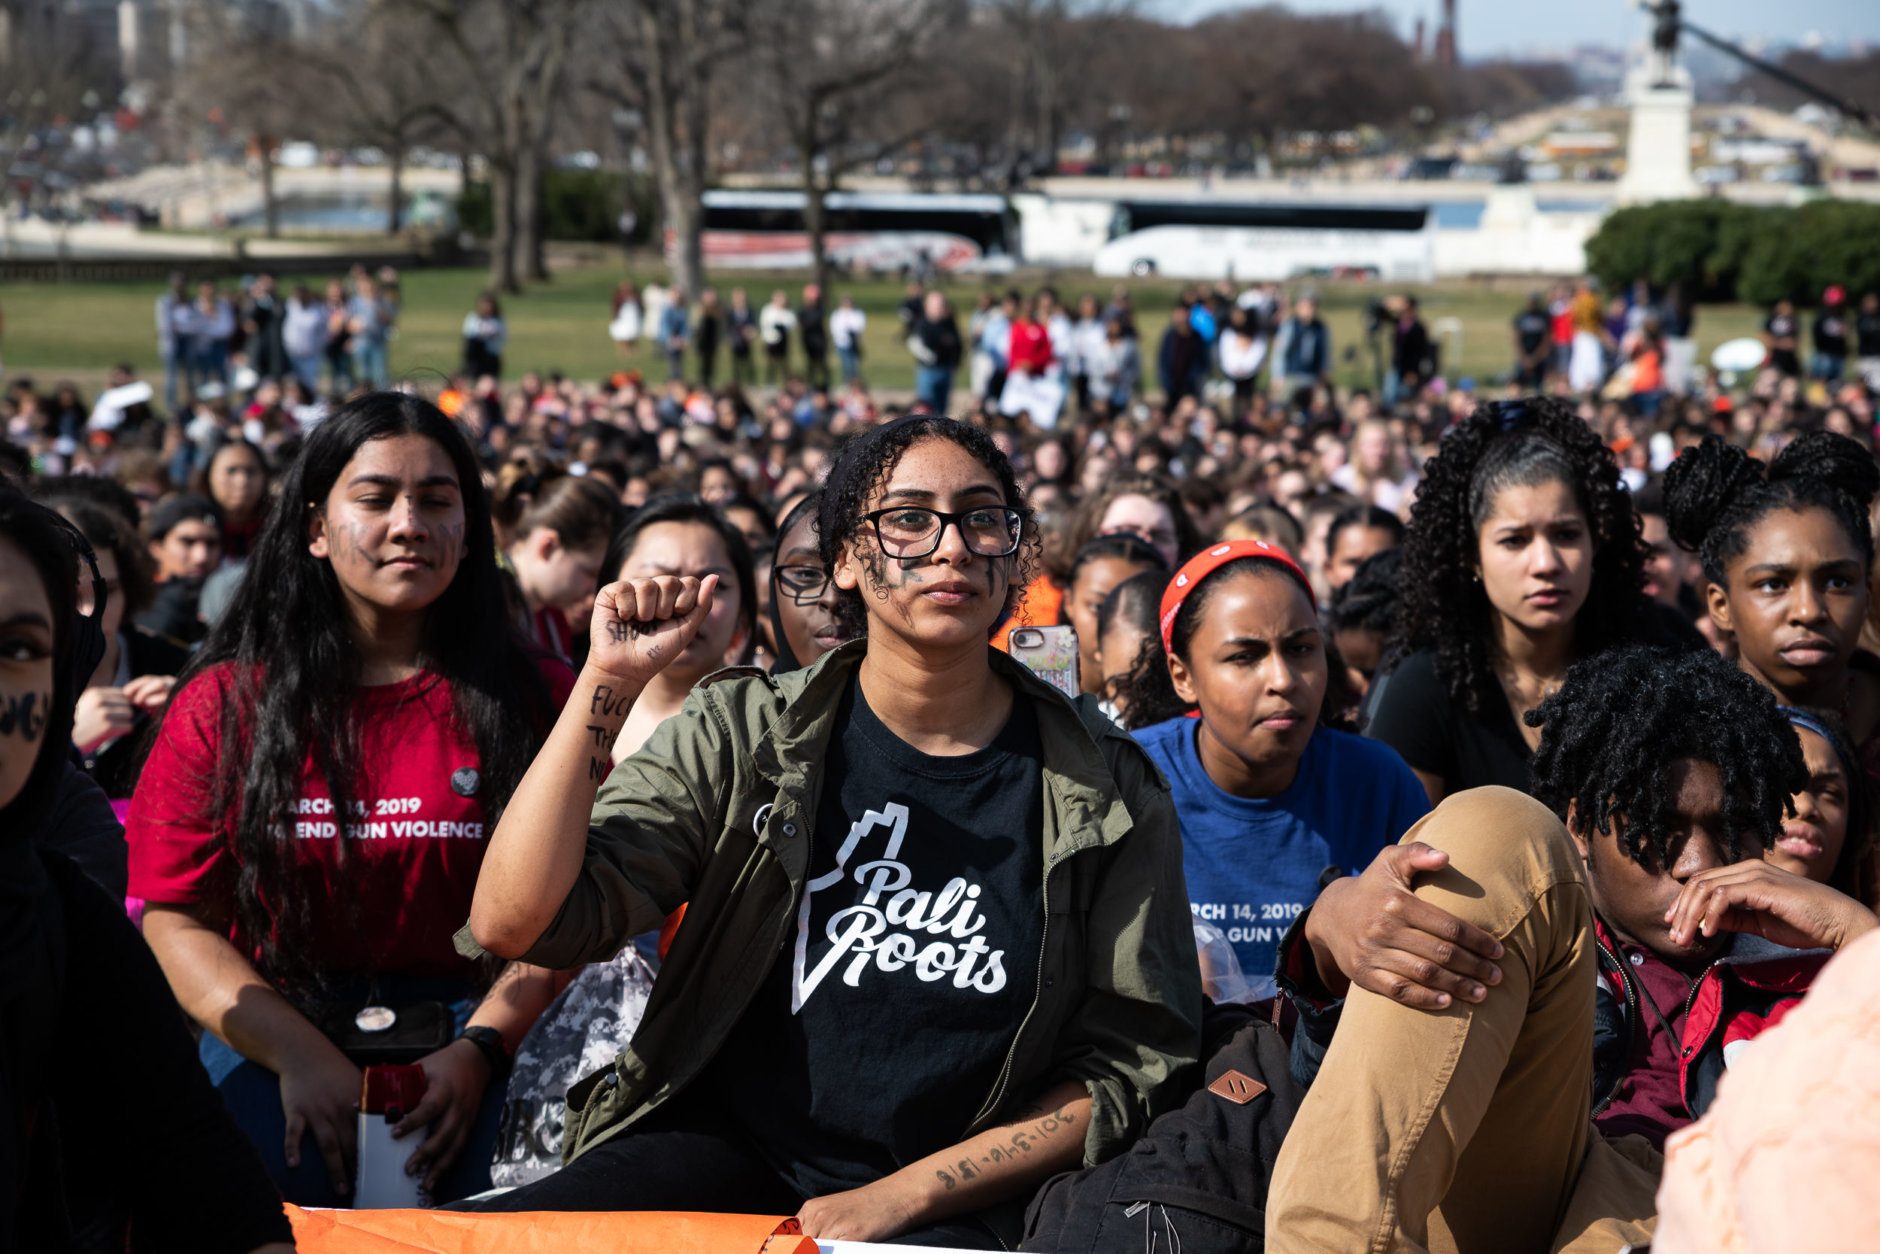 Students from Maryland, Virginia and D.C. joined up for an outdoor rally in the shadow of the Capitol rotunda, emboldened by a new Democratic majority in the House. (WTOP/Alejandro Alvarez)